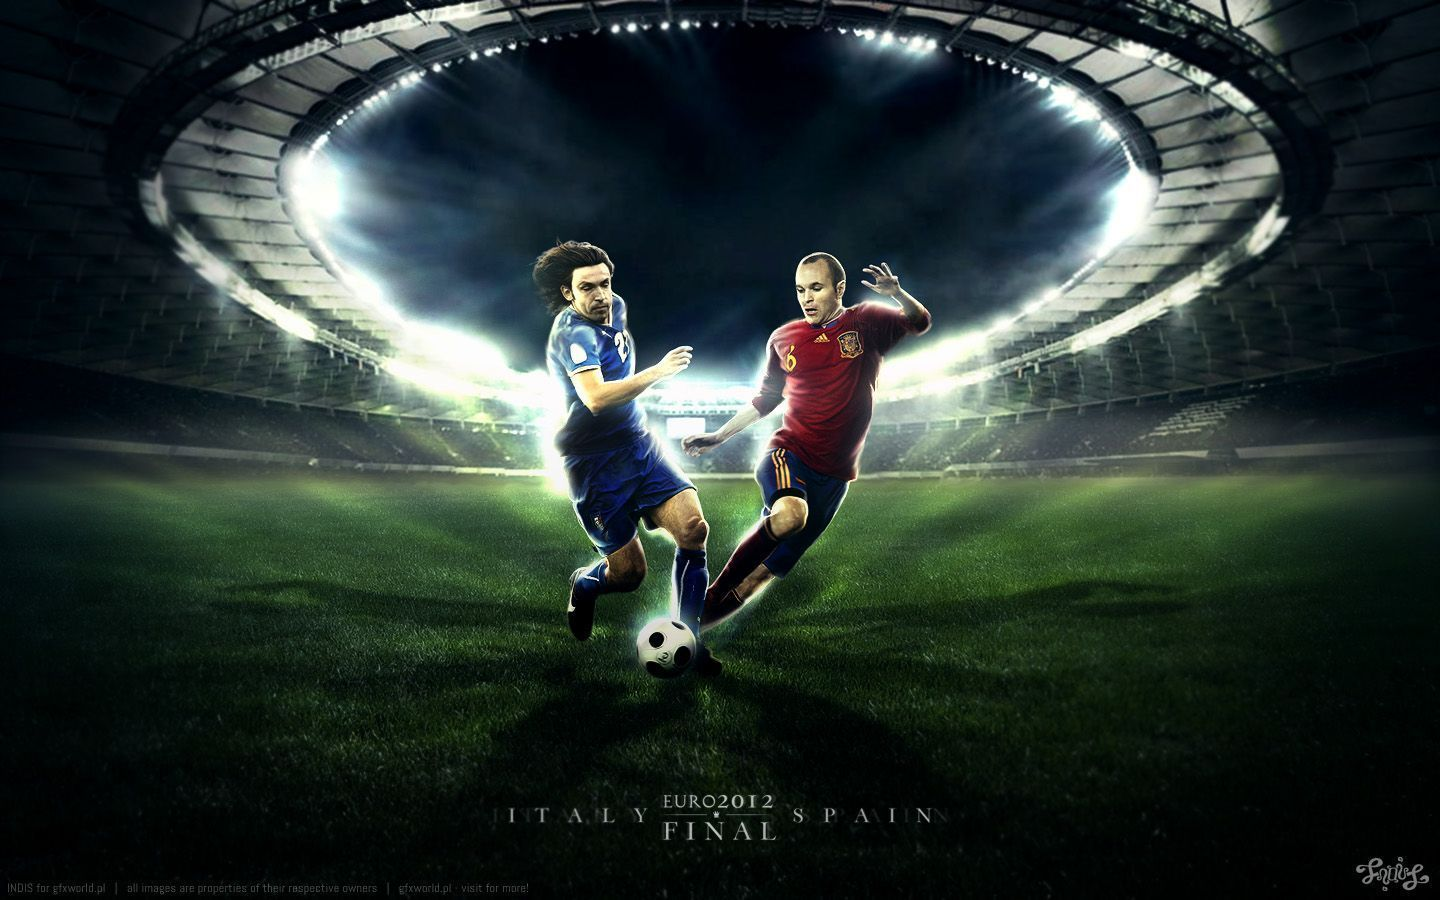 Wallpaper Celebrity Hollywood Soccer Wallpapers Football Desktops 1920 1080 Football Soccer Wallpapers 4 Football Wallpaper Sports Wallpapers Sports Pictures